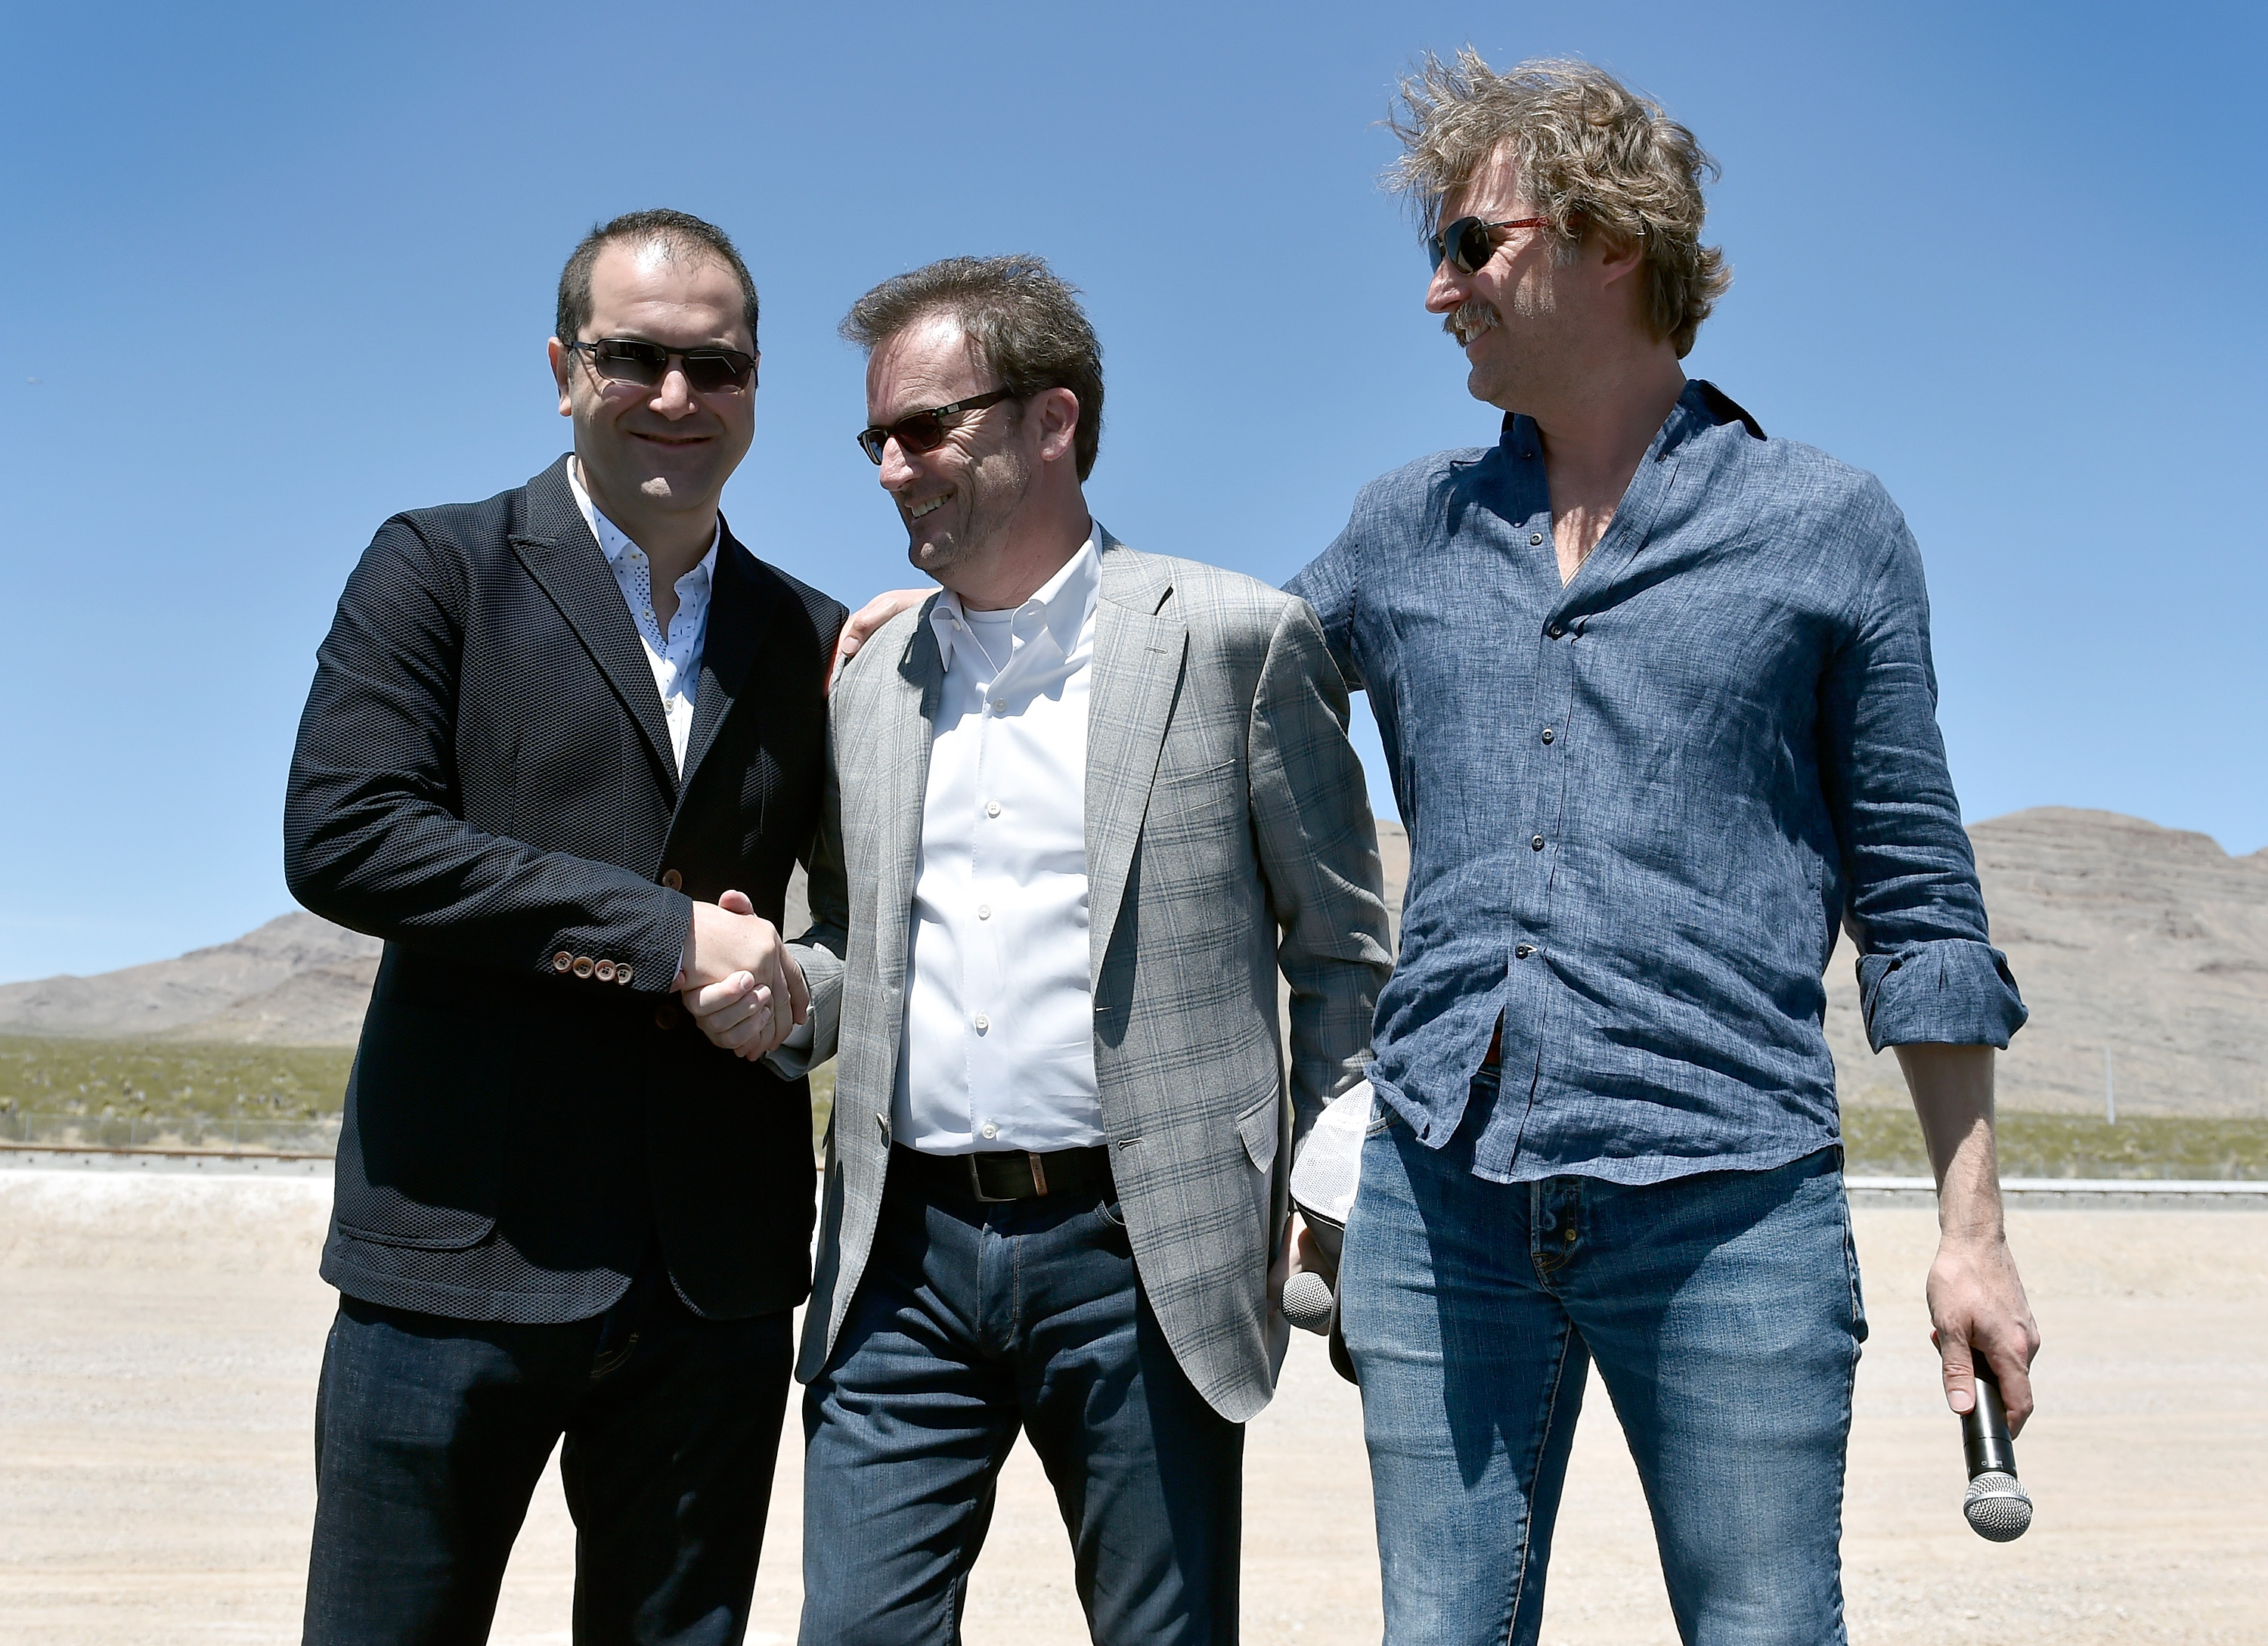 (L-R) Hyperloop One Co-Founder & Executive Chairman Shervin Pishevar, Hyperloop One Chief Executive Officer Rob Lloyd and Co-Founder & Chief Technology Officer Brogan BamBrogan speak during the first test of the propulsion system at the Hyperloop One Test and Safety site on May 11, 2016 in North Las Vegas, Nevada.